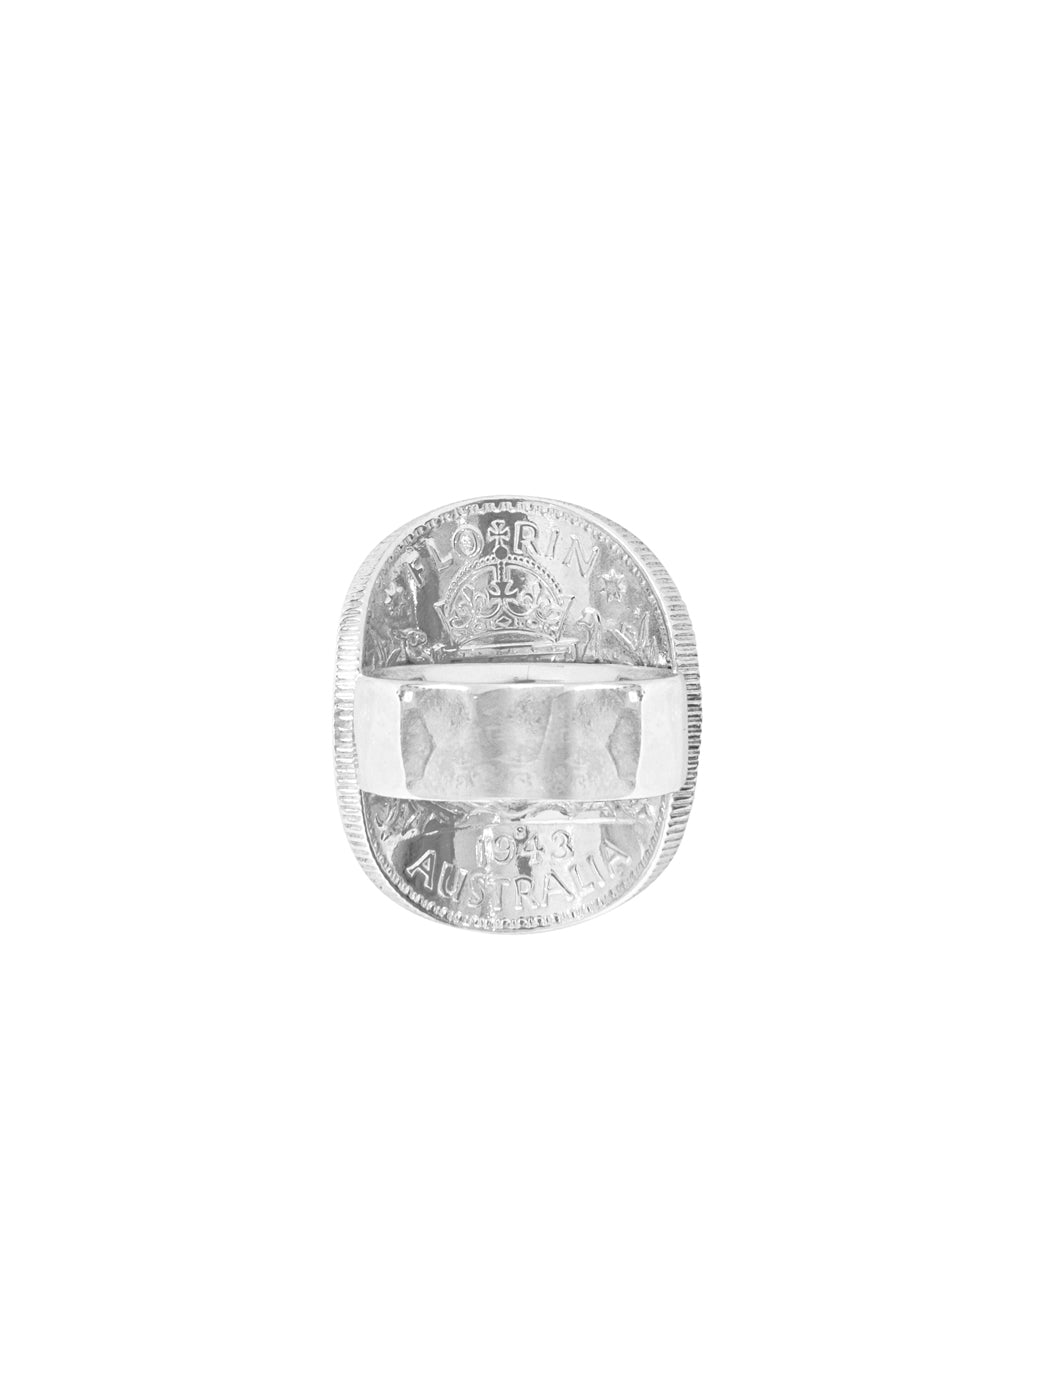 Fiorina Jewellery Bent Coin Ring Back